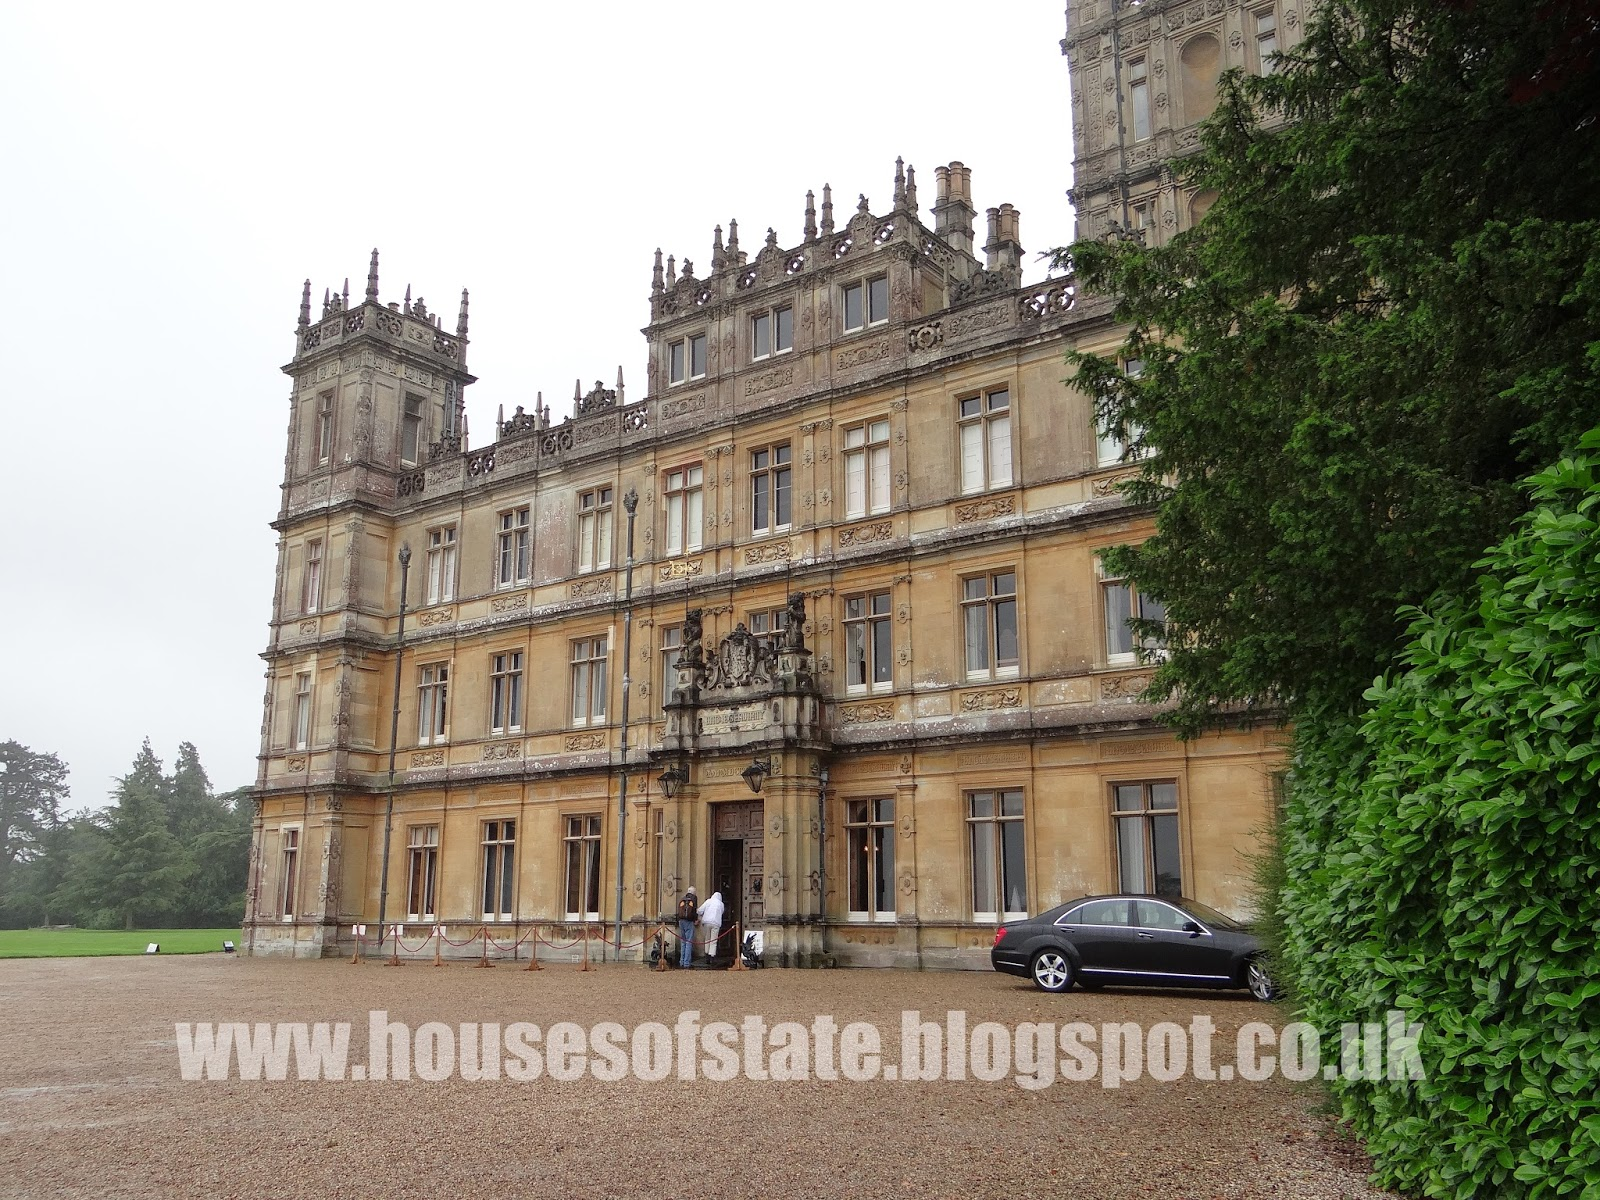 Houses of state highclere castle downton abbey photos for Highclere castle blueprints